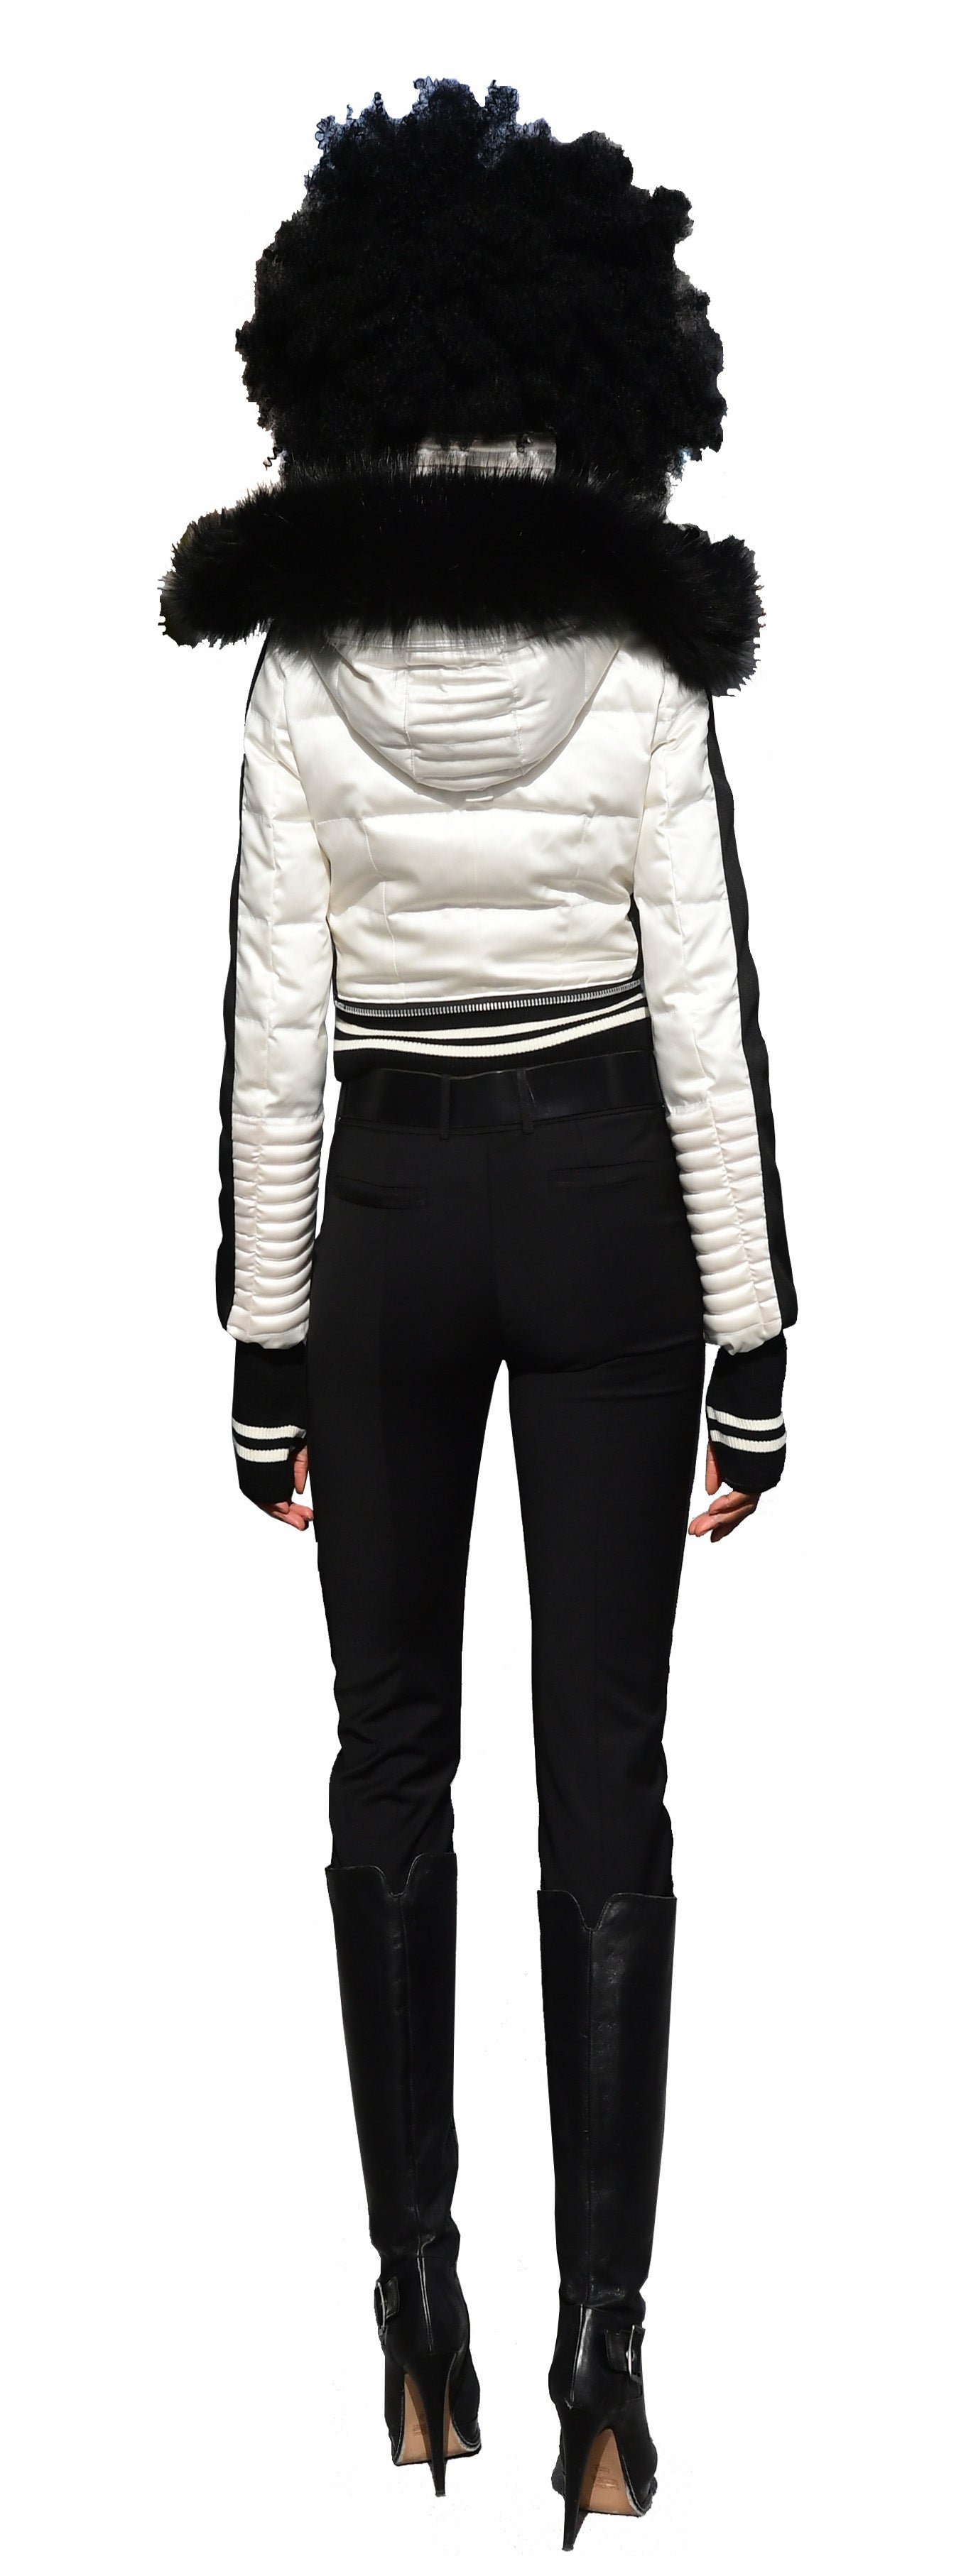 Infinia Bomber Jacket for Women